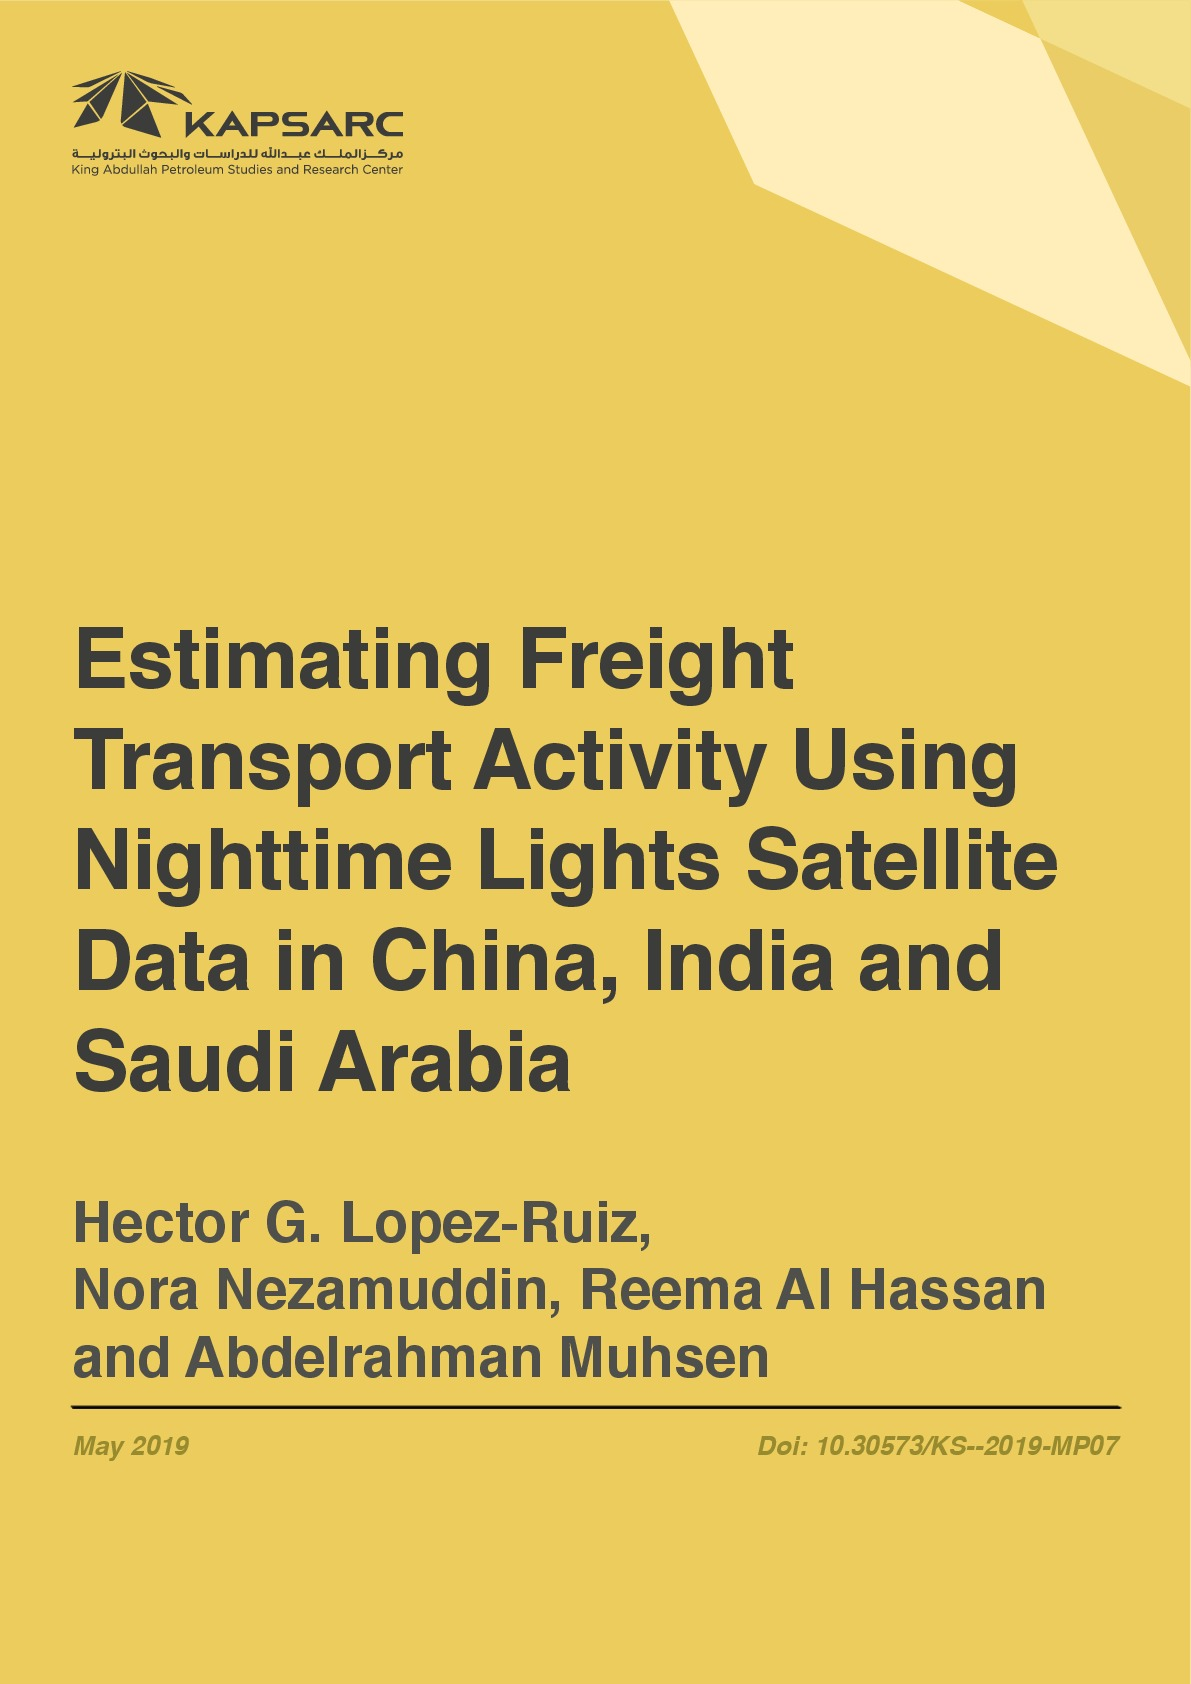 Estimating Freight Transport Activity Using Nighttime Lights